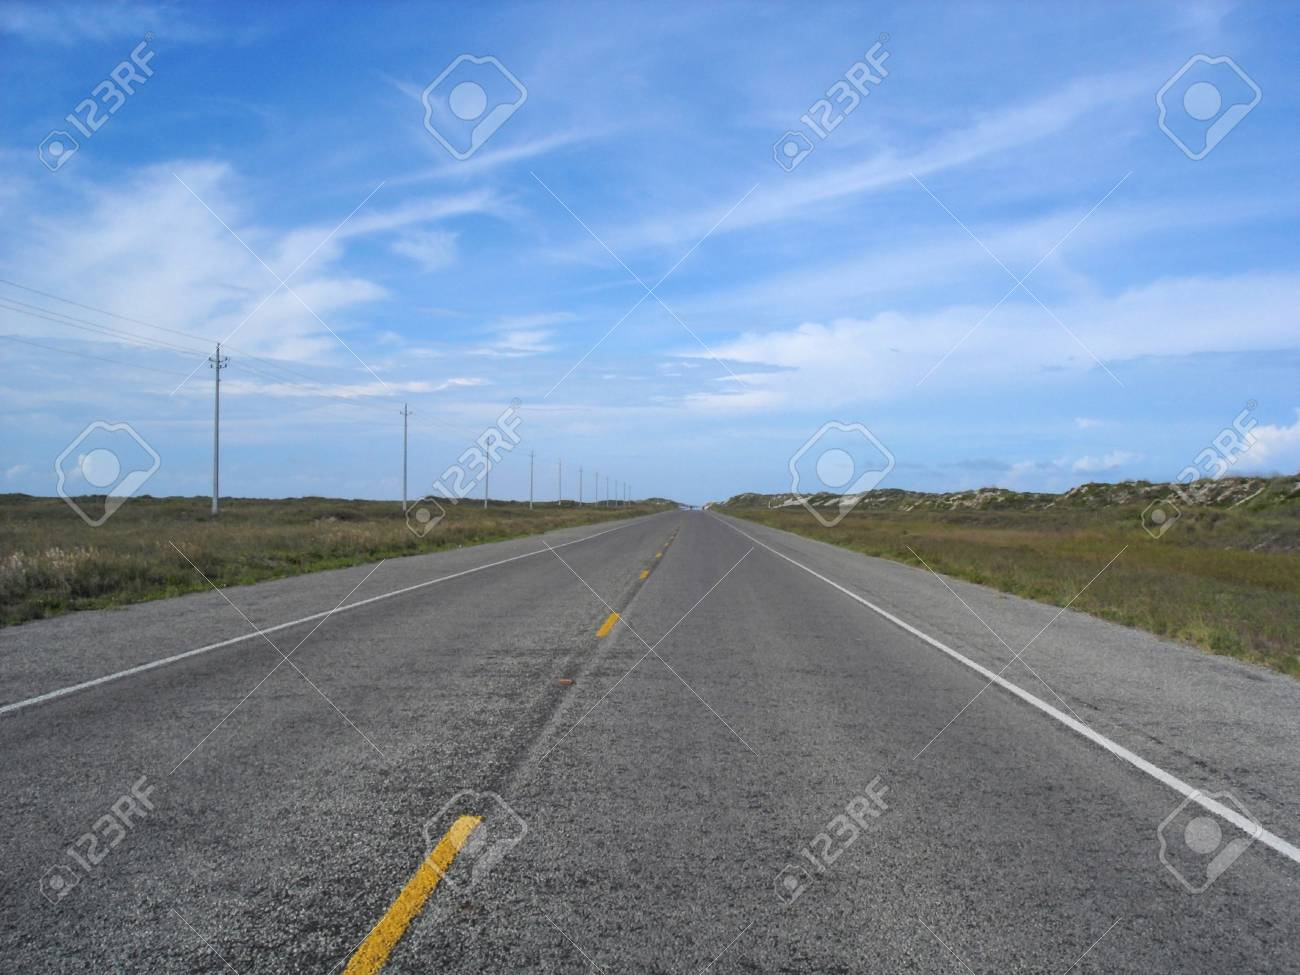 View of a desolate road stretching off into the distance. Stock Photo - 8669519